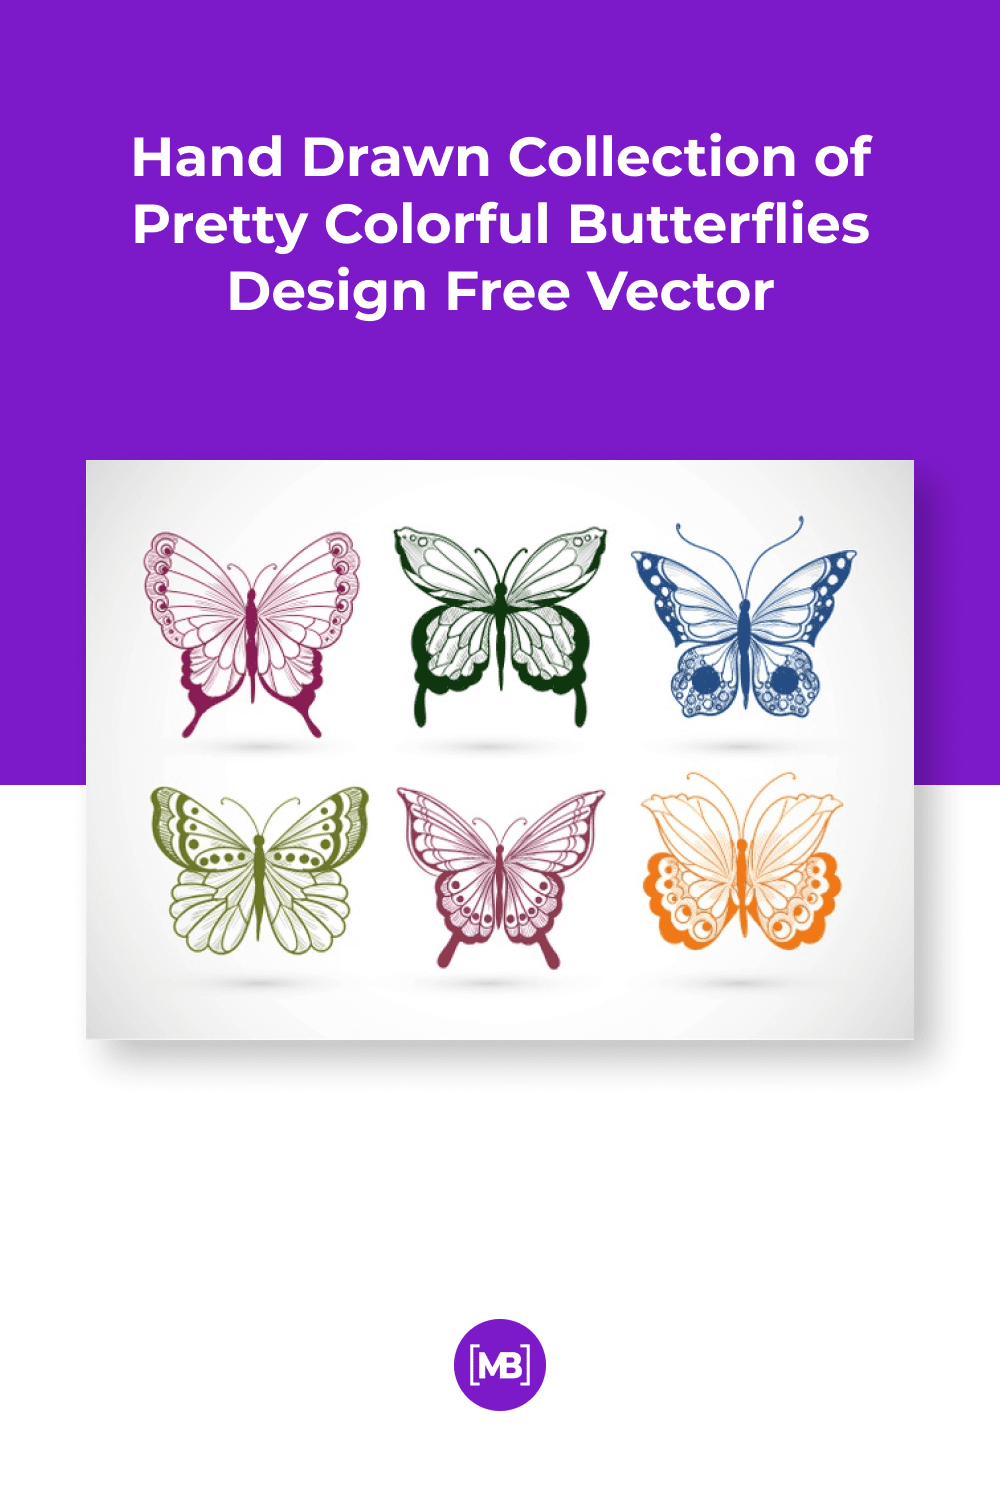 Delicate collection of butterflies in different colors and ornaments.